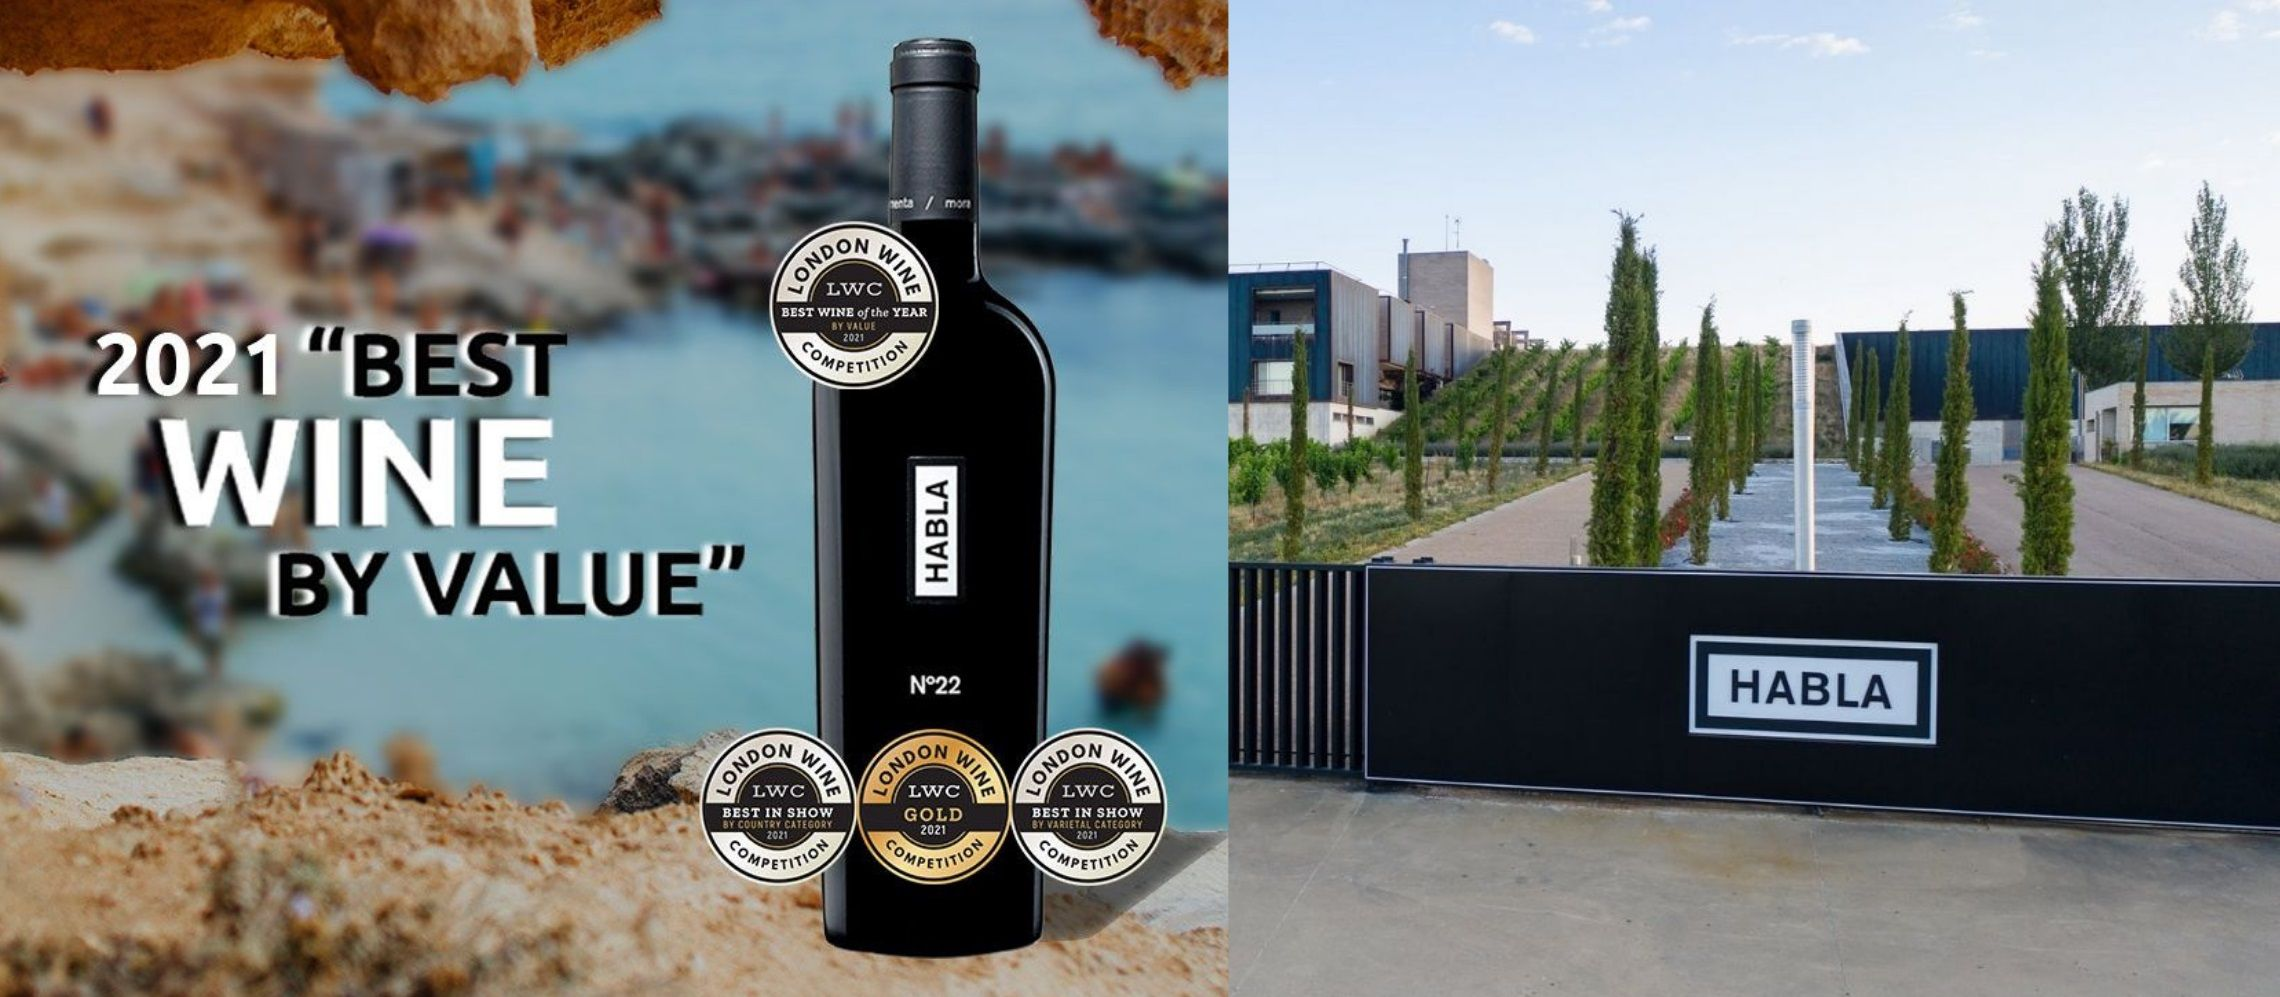 Photo for: Habla Nº22 Crowned Best Wine by Value